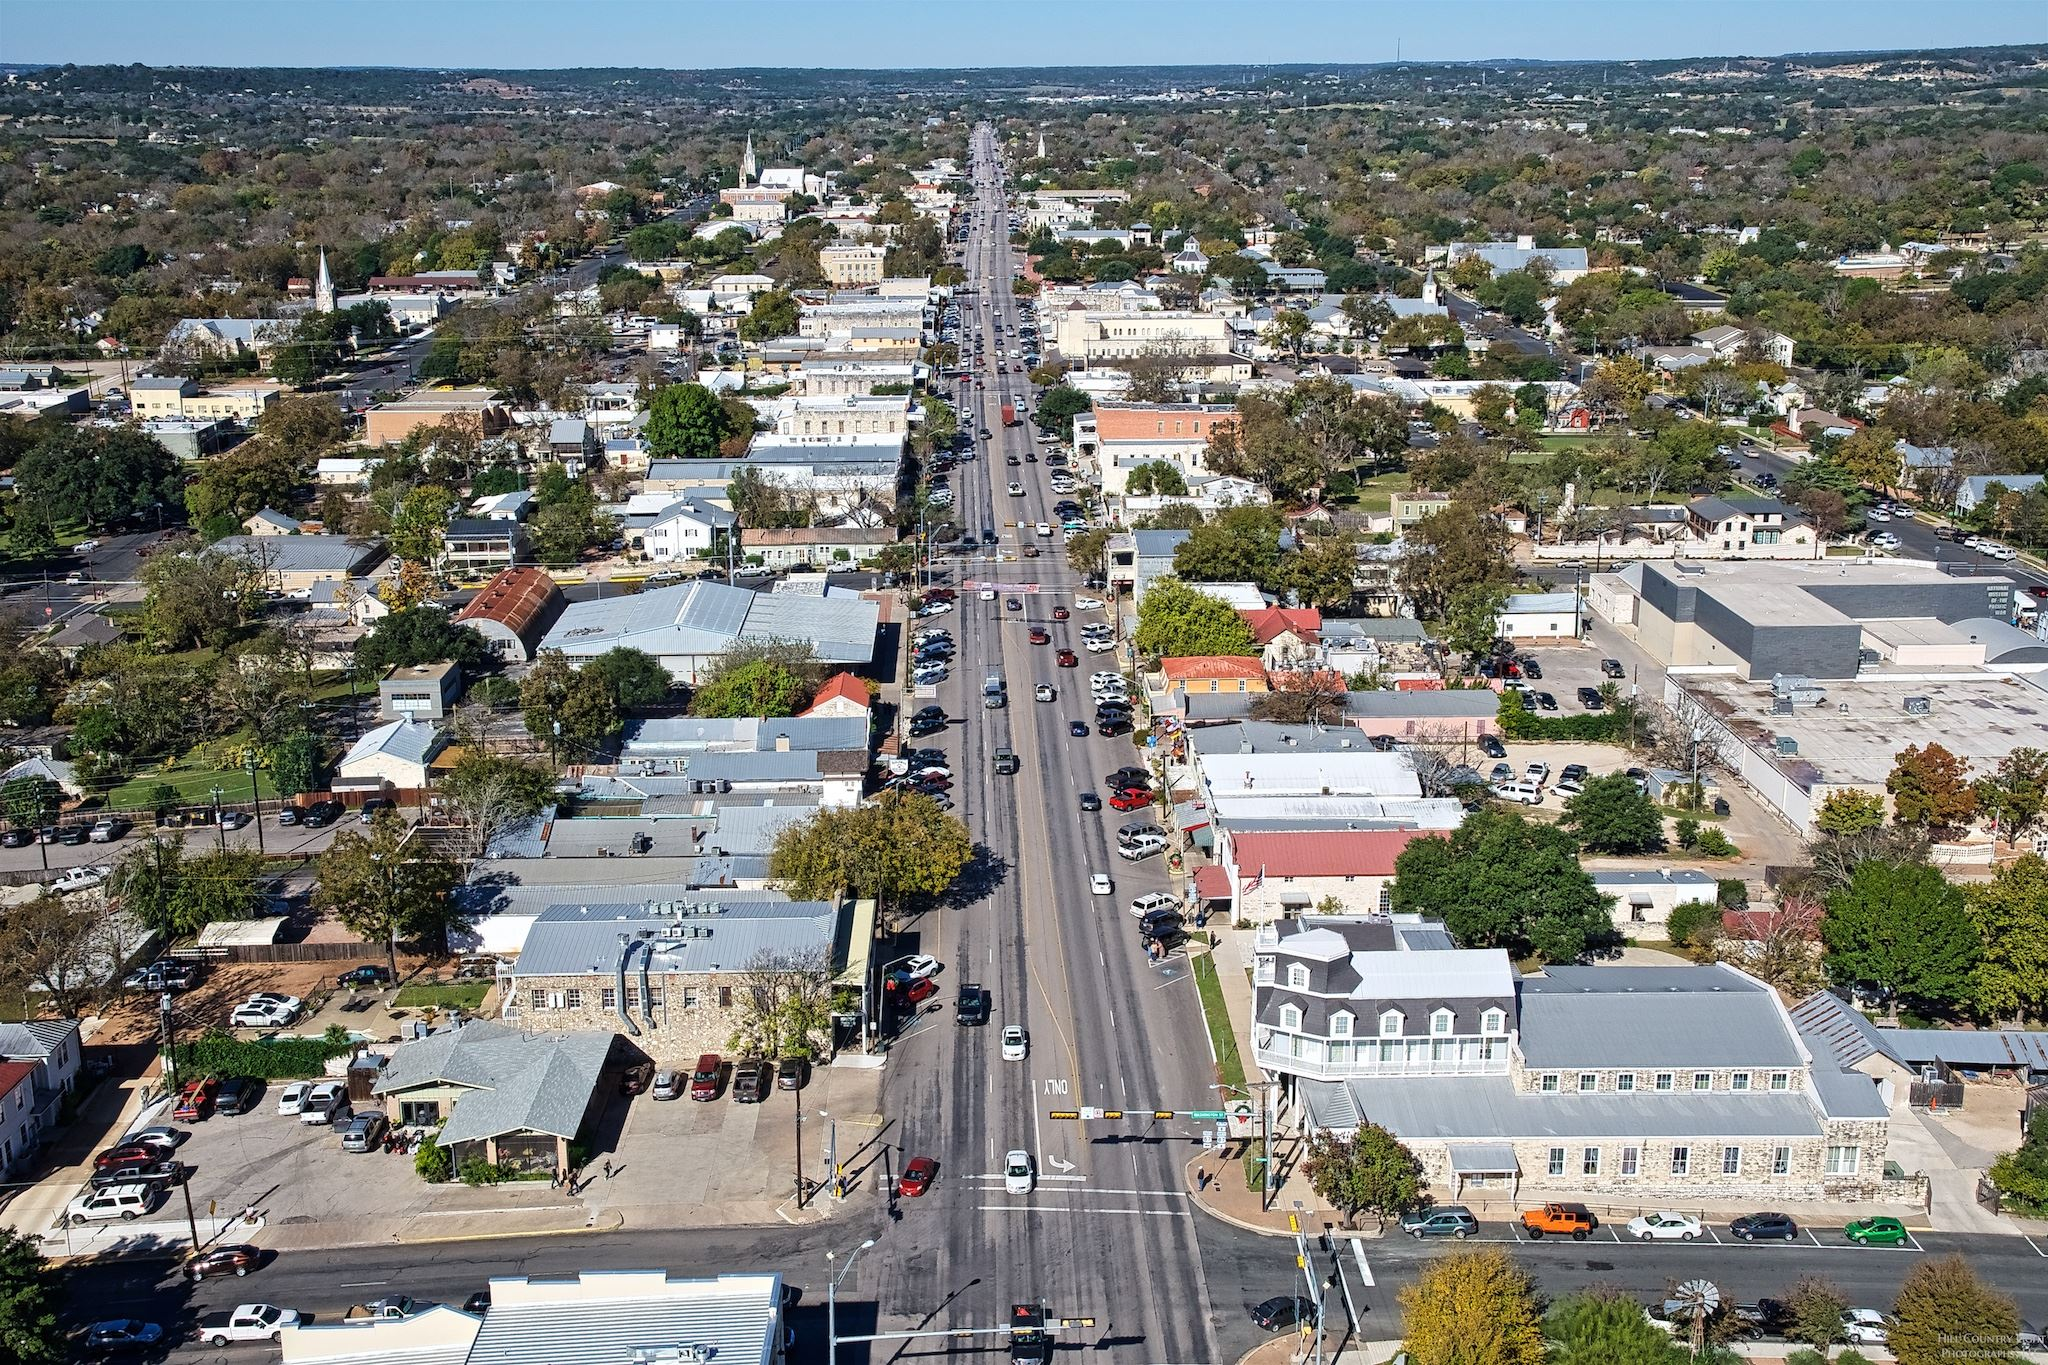 West Main St Fredericksburg Aerial View (credit Miguel Lecuona)